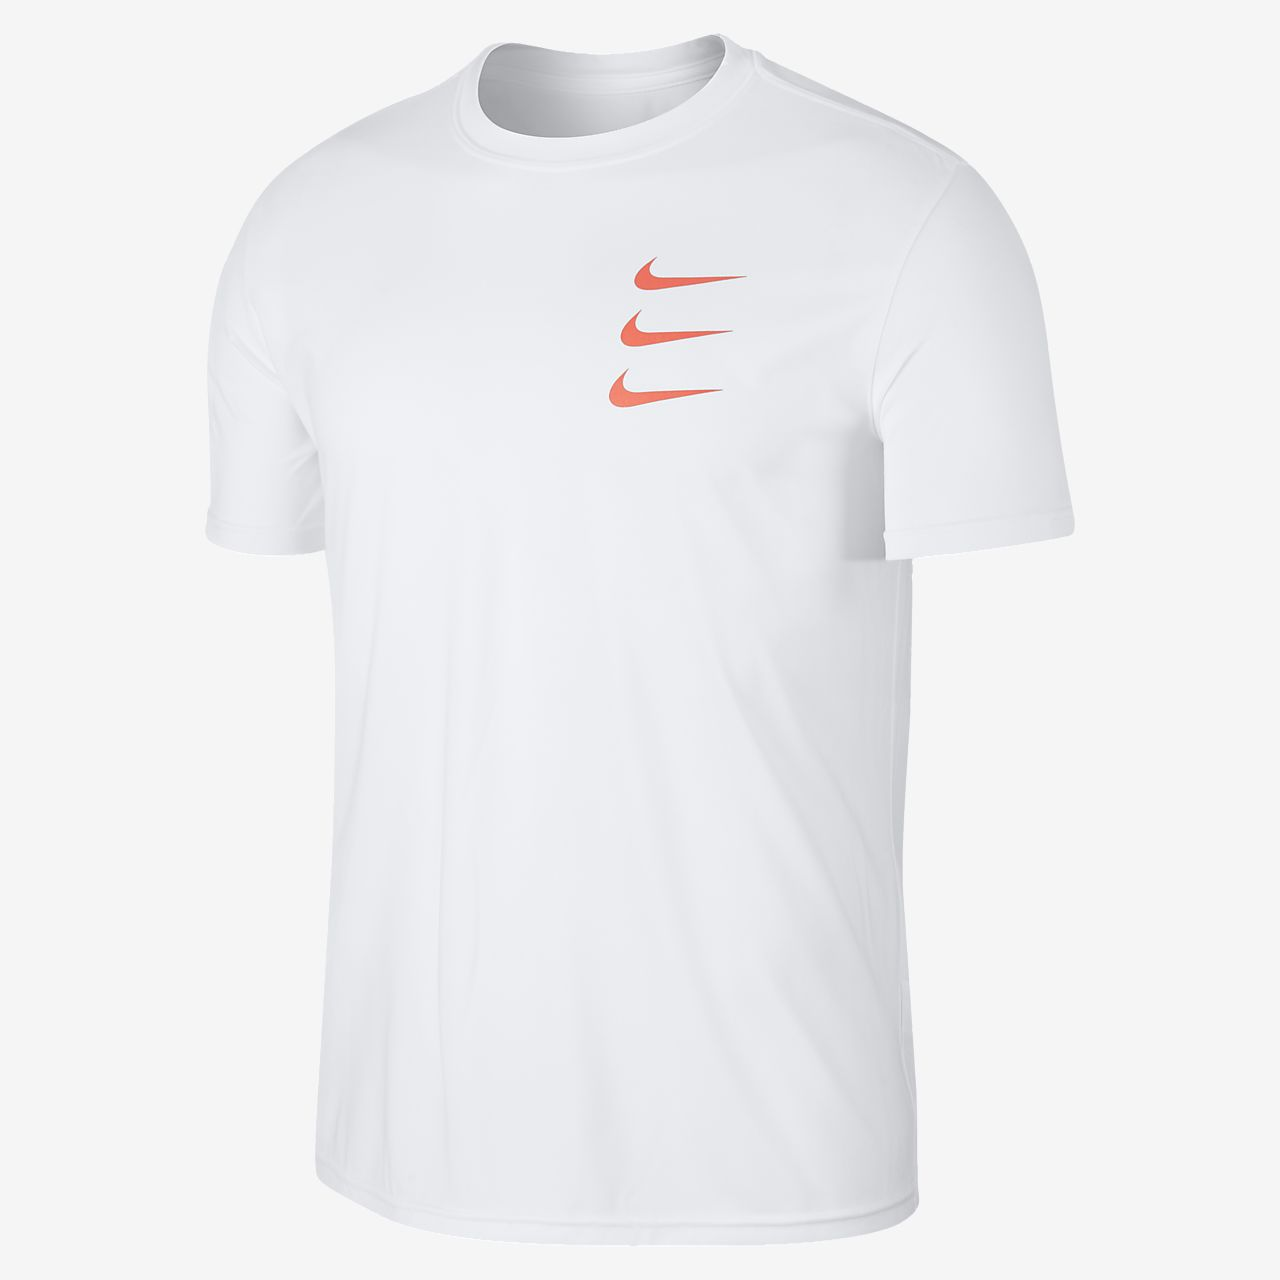 Nike Dri-FIT (London) løpe-T-skjorte til herre